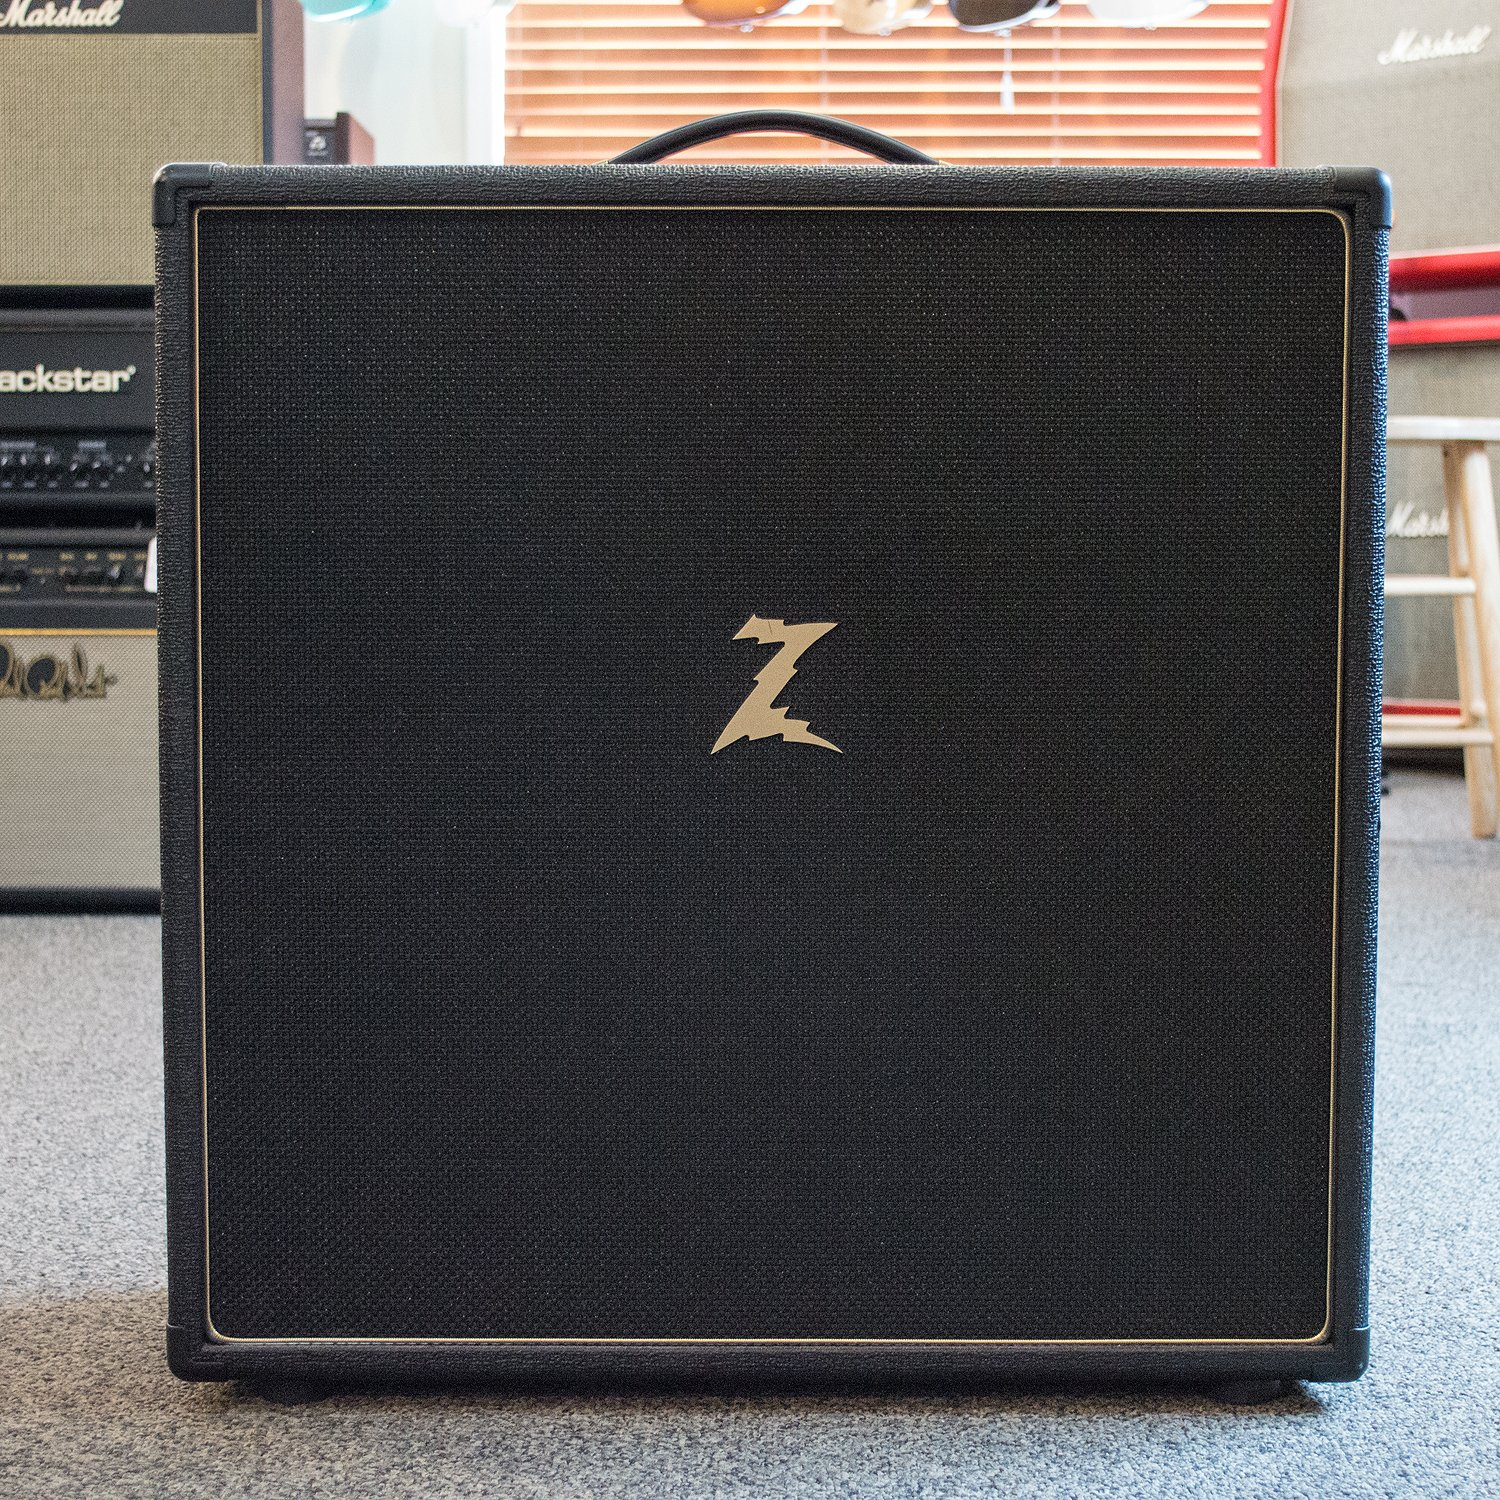 Dr. Z EMS 2x12 Cabinet (USED)